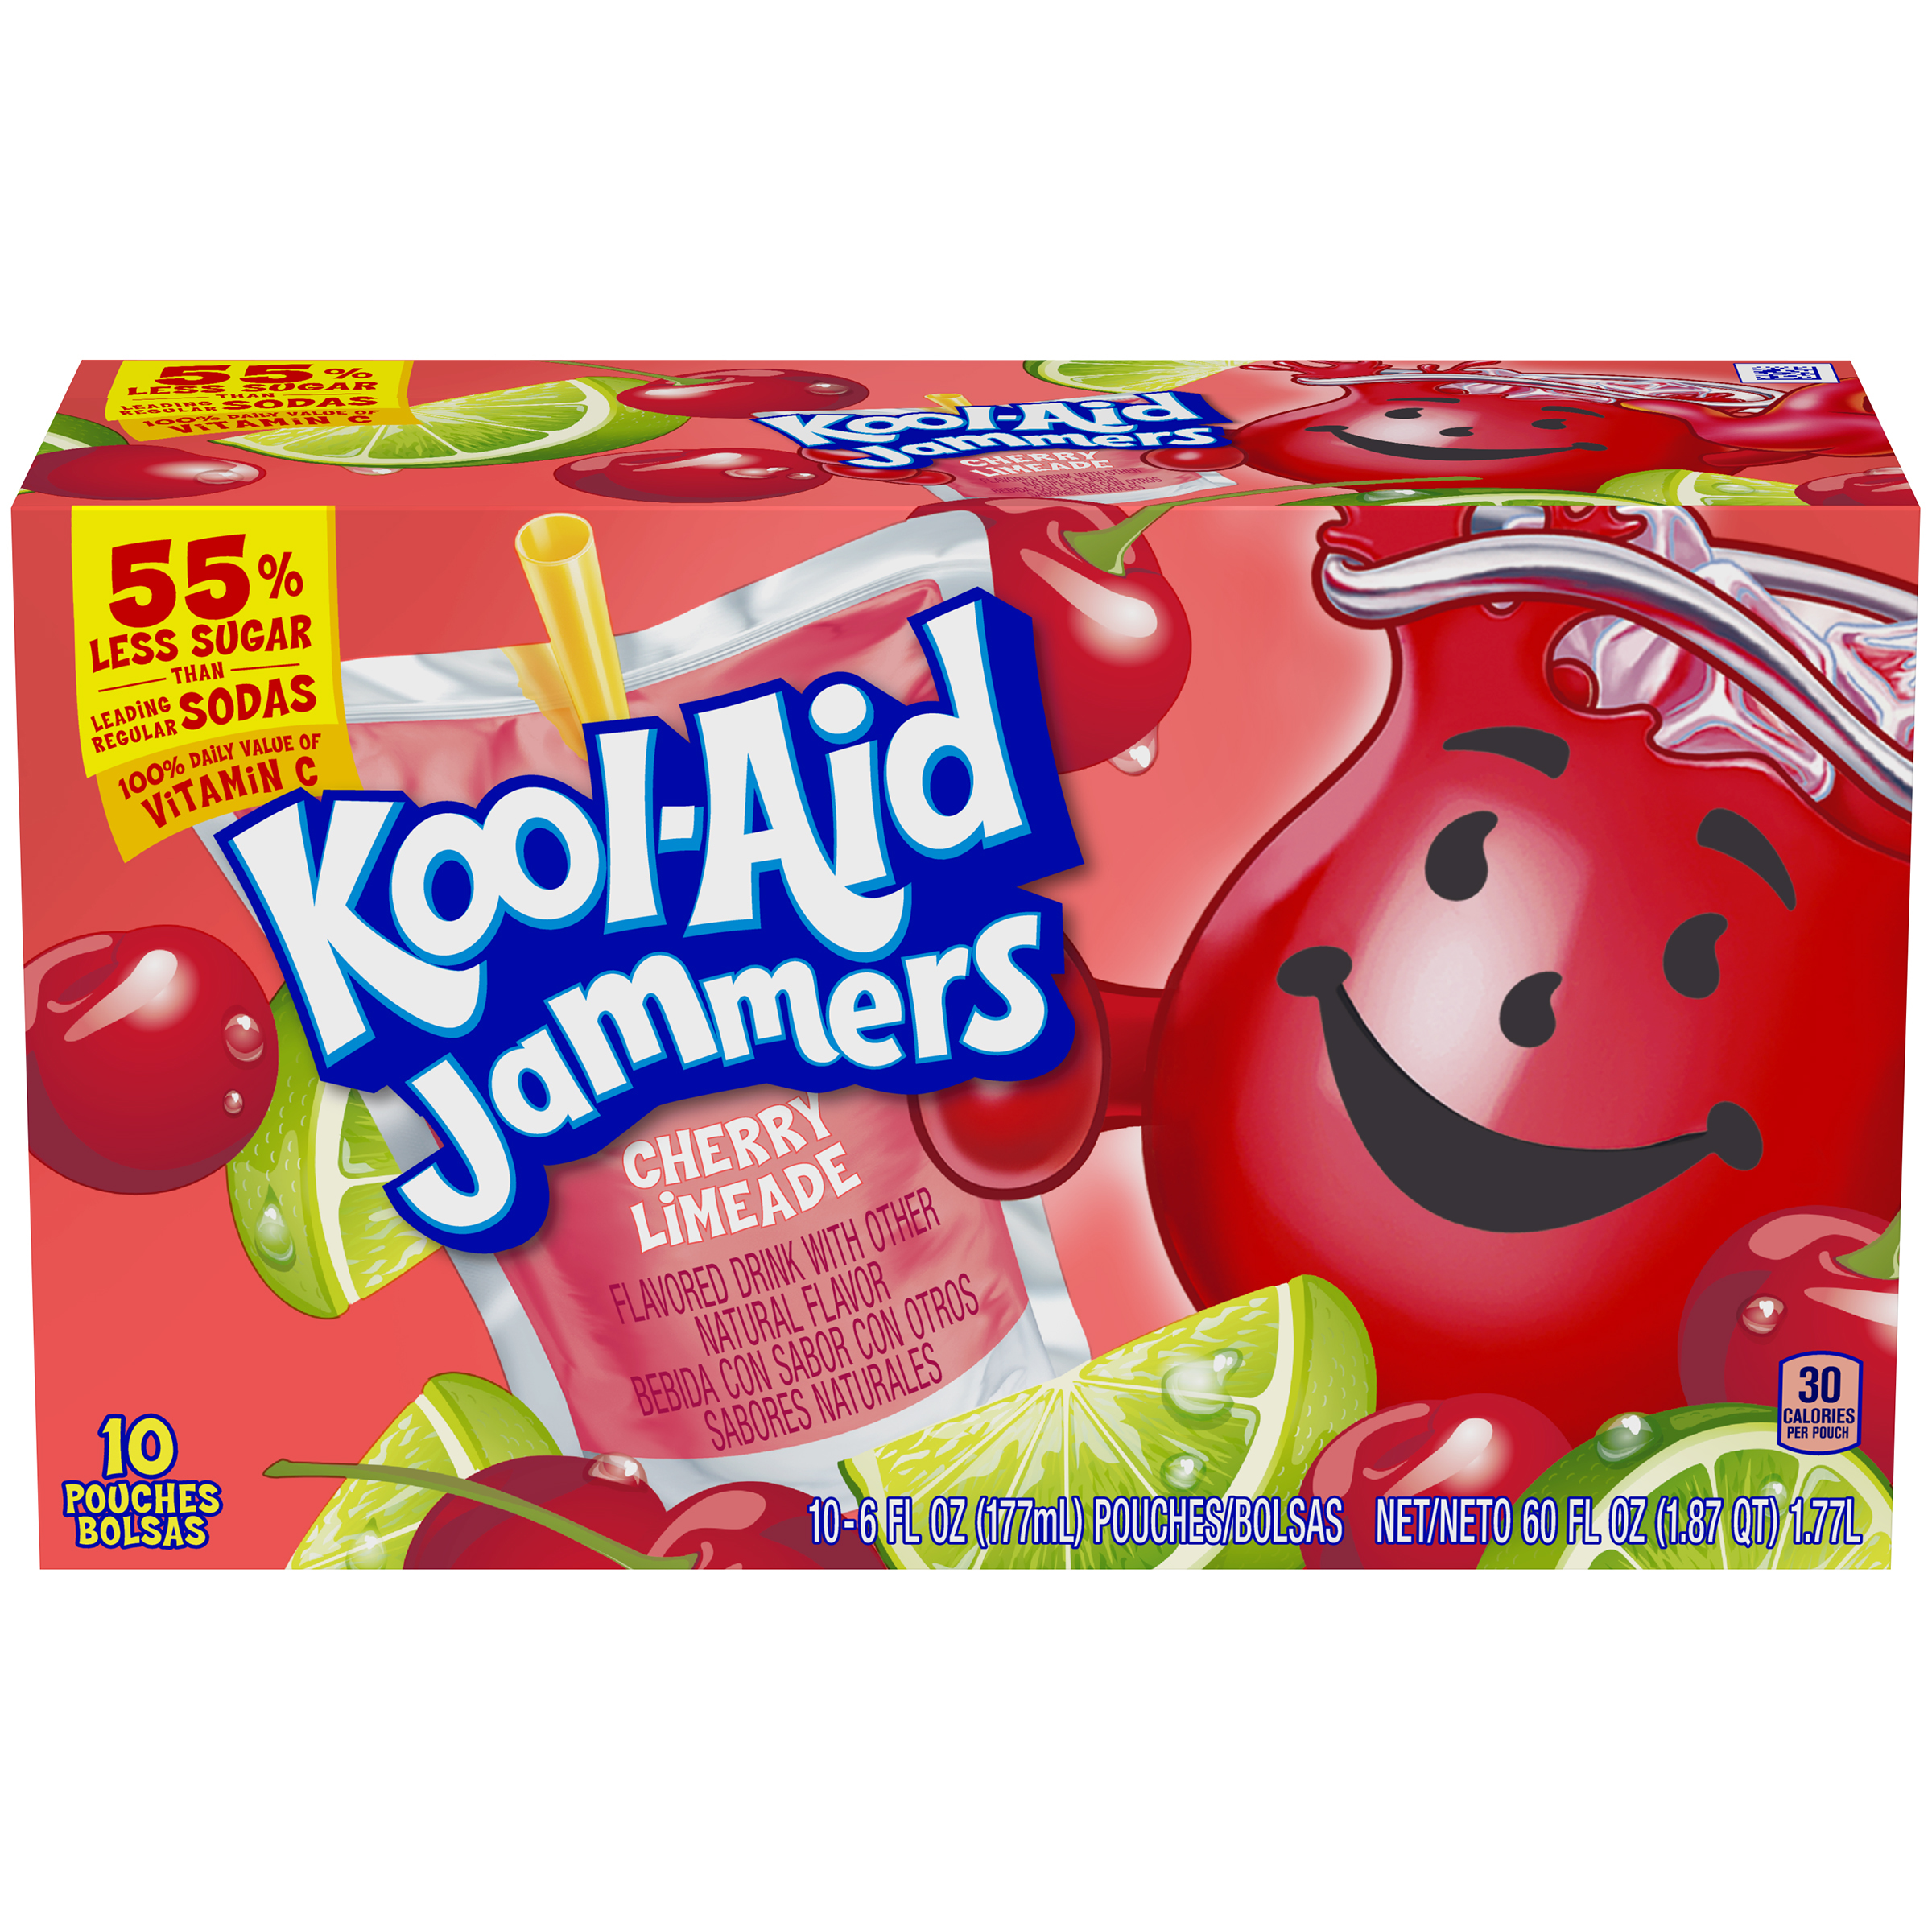 Kool-Aid Jammers Cherry Limeade  Flavored Drink 60 fl oz Box (10-6 fl oz Pouches) image